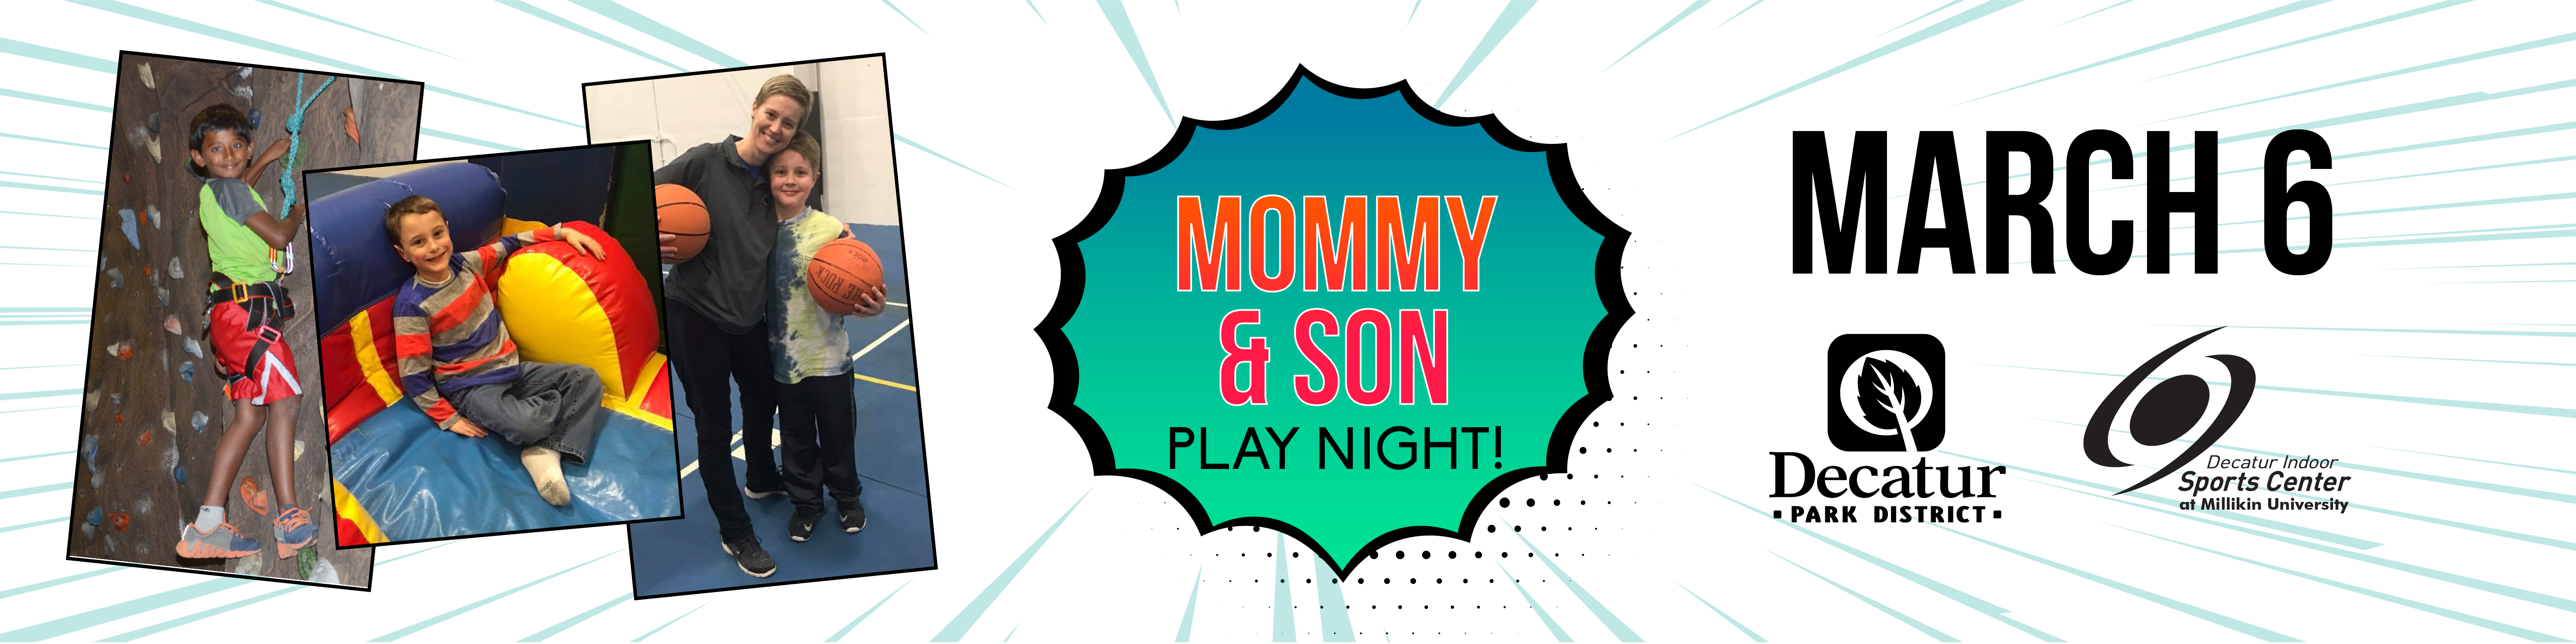 Mommy-Son-Banners-03